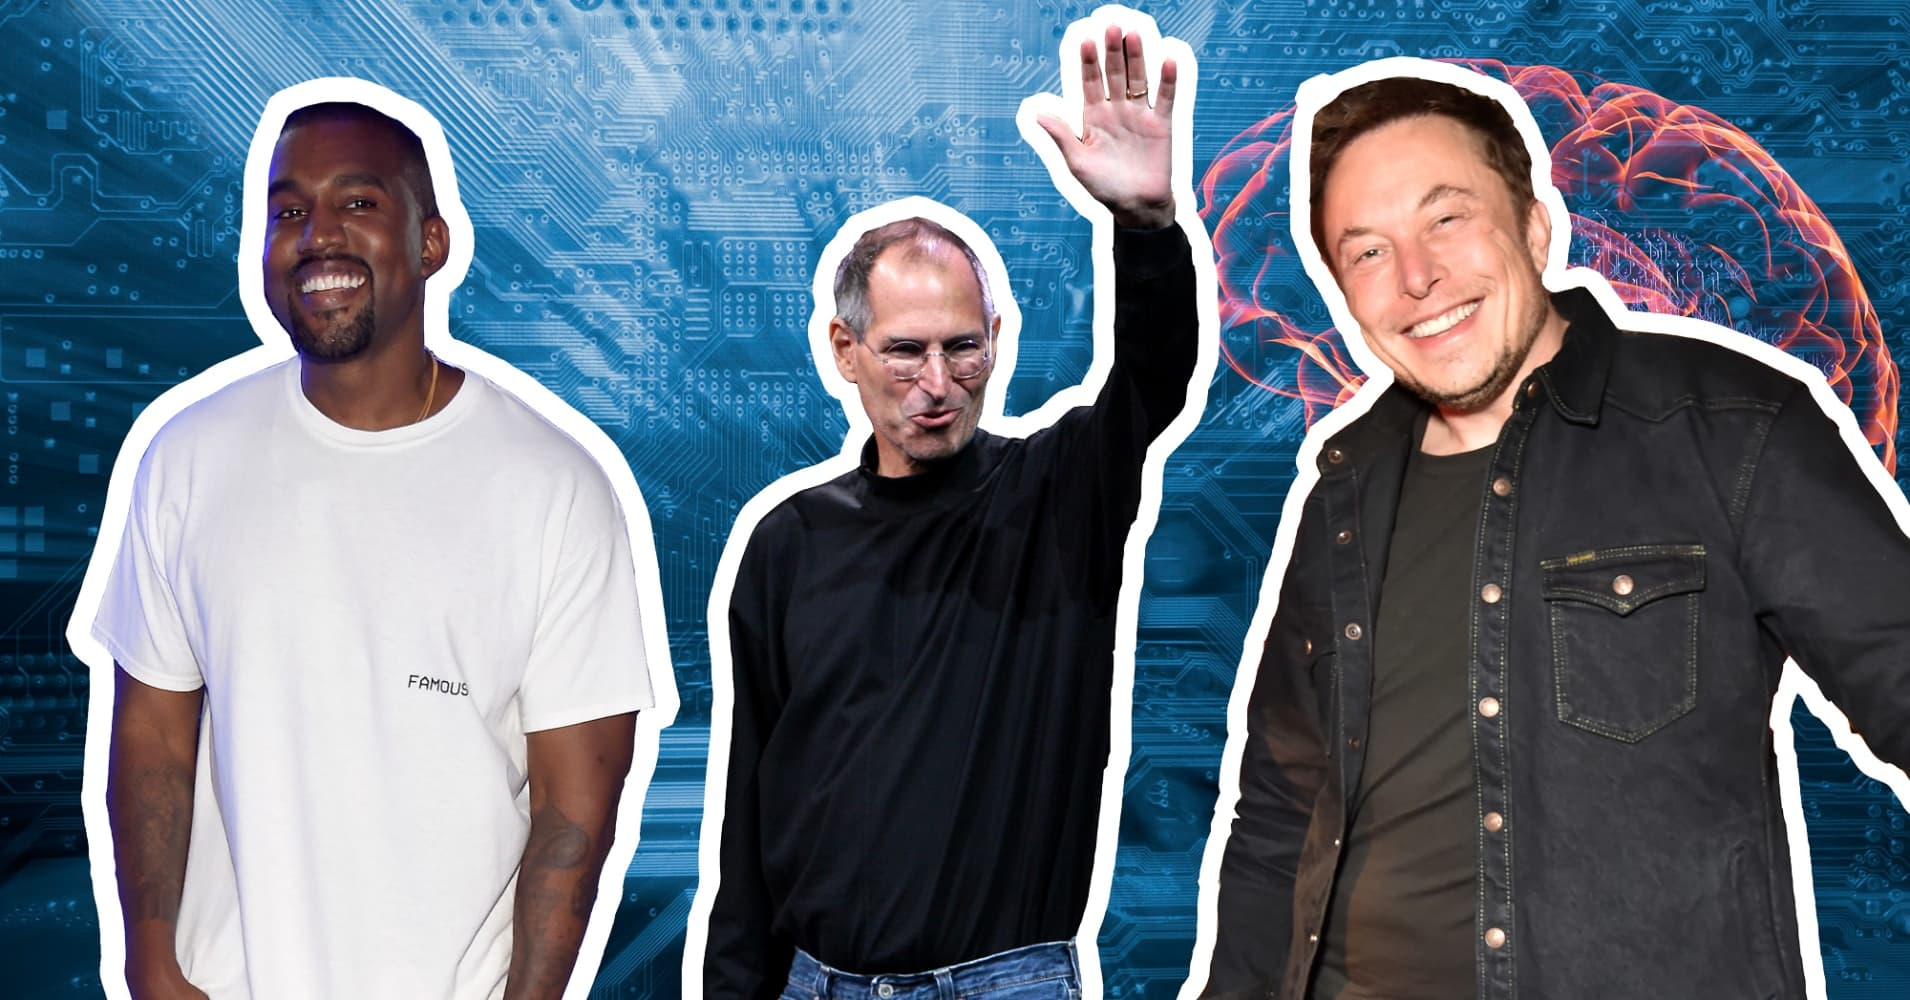 L-R: Musician and designer Kanye West, late Apple co-founder Steve Jobs and Tesla and SpaceX CEO Elon Musk.